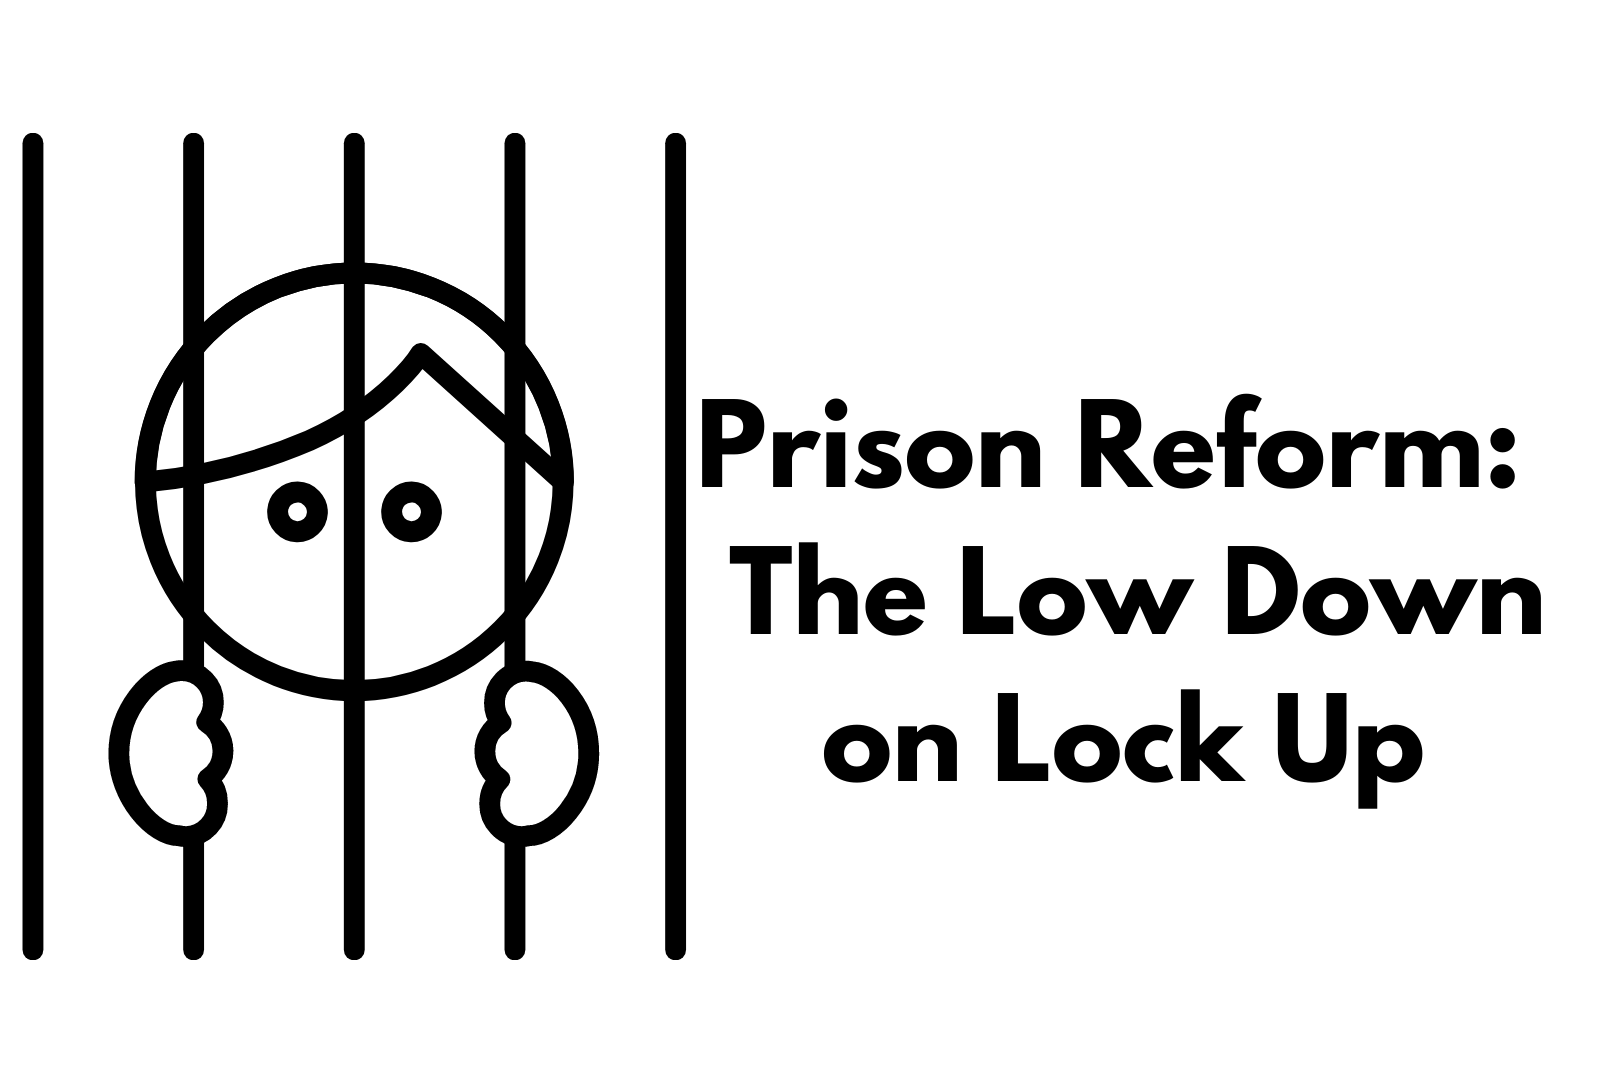 Ep. 14 Prison Reform: The Low Down on Lock Up